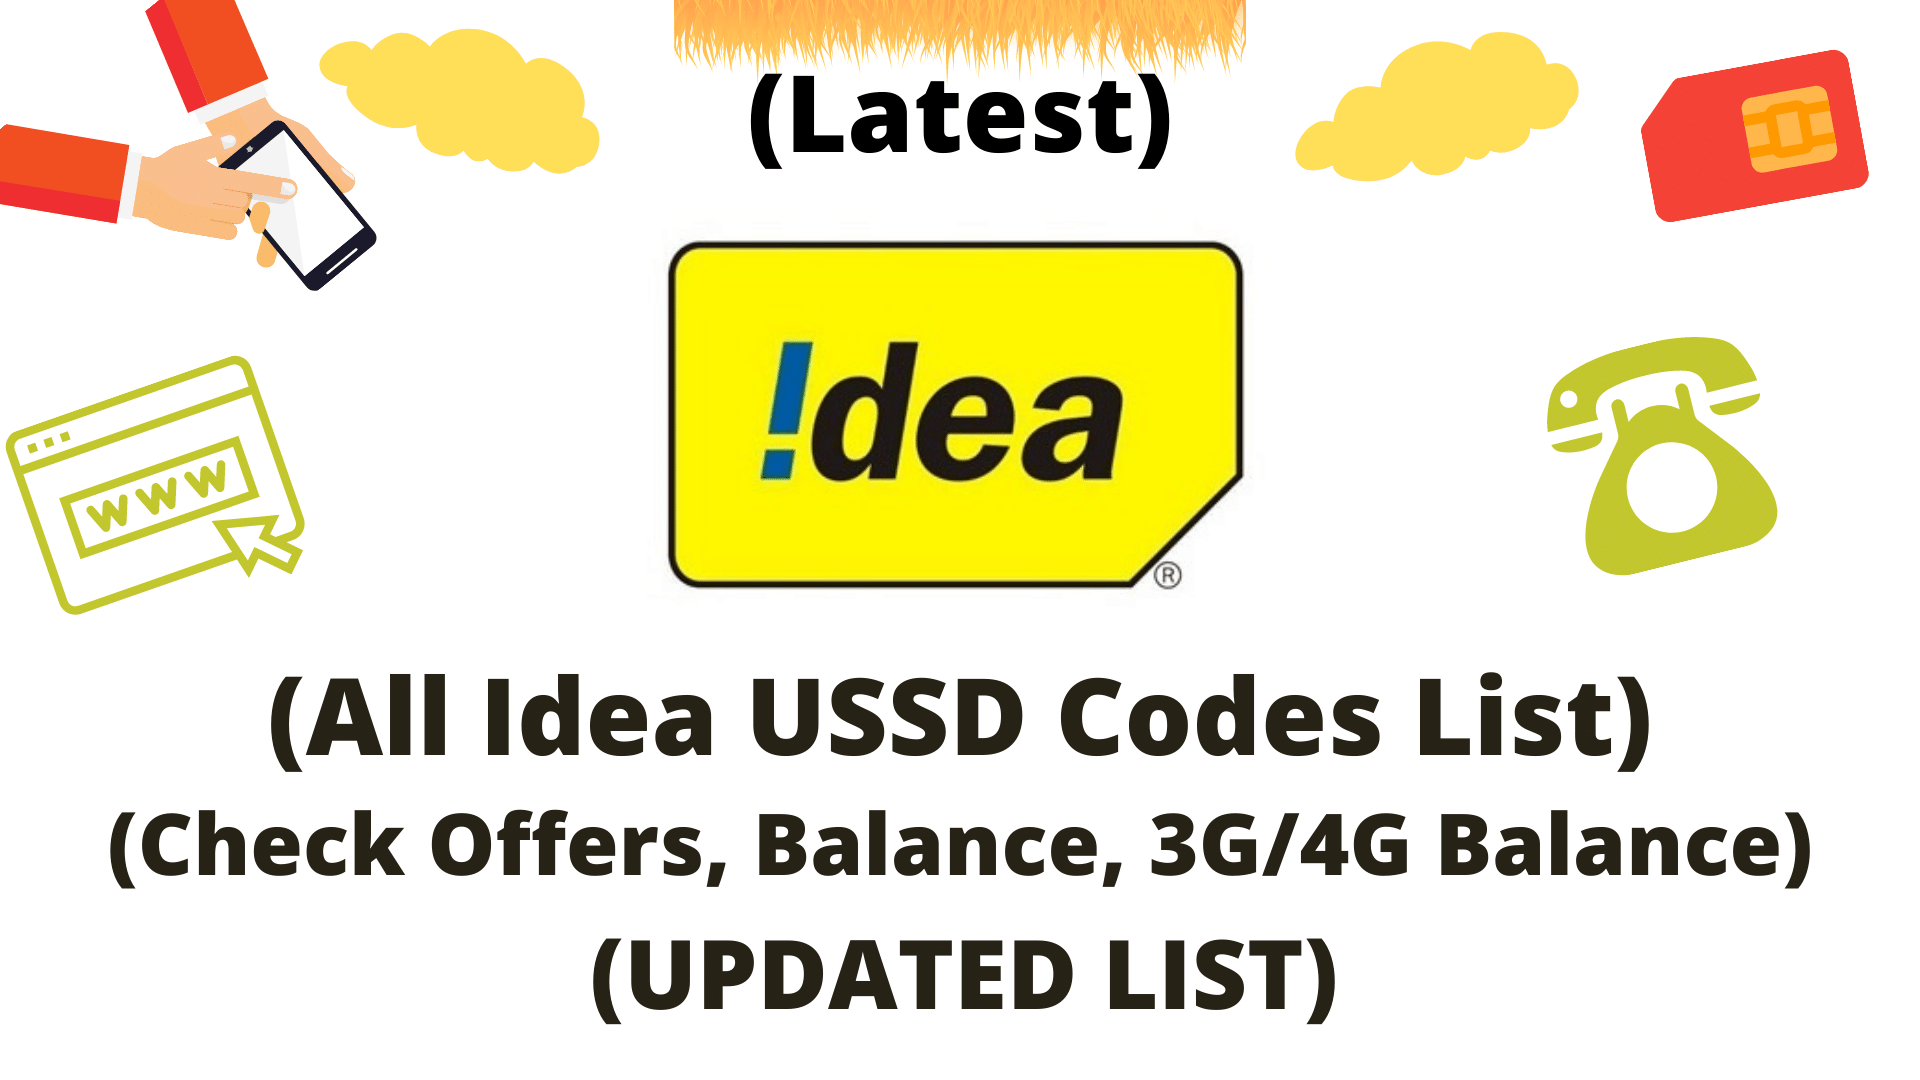 All IDEA USSD Codes List